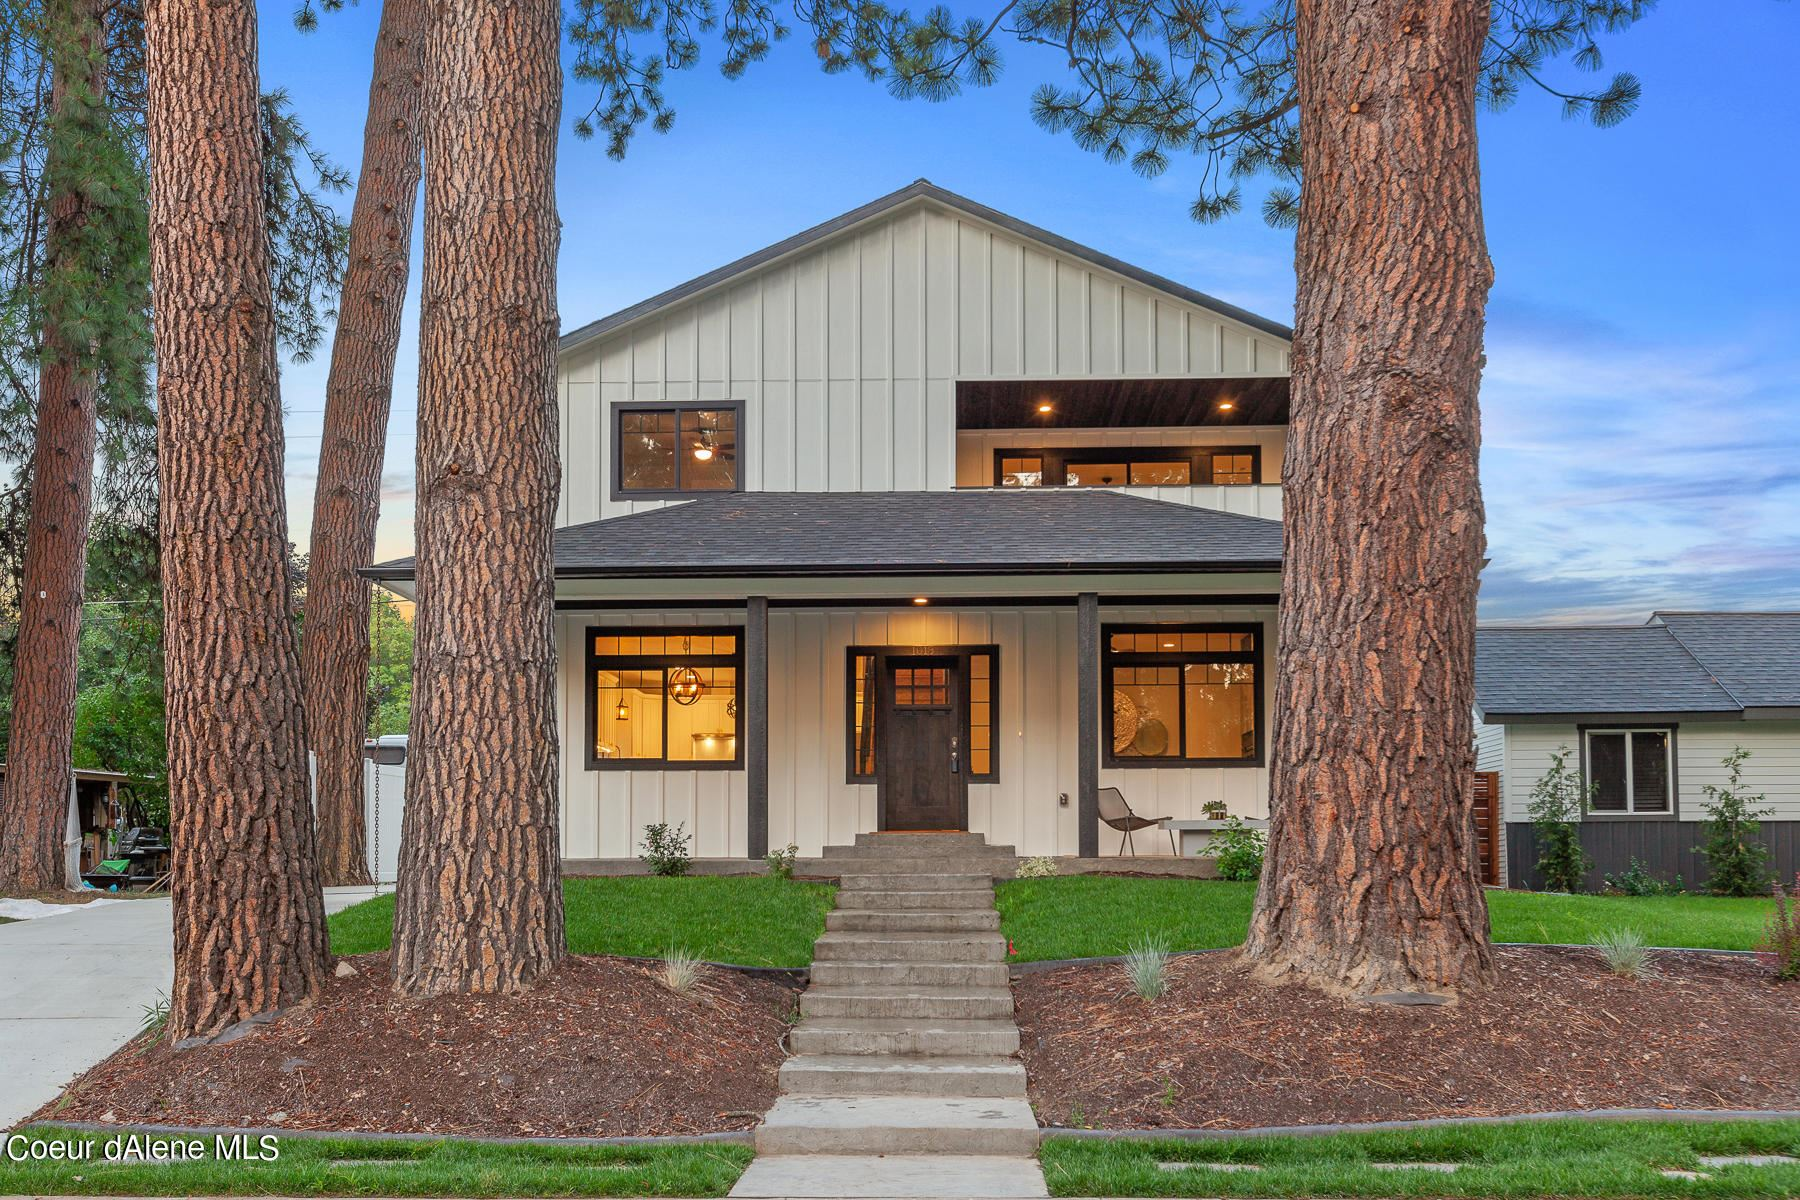 Photo of 1018 N GOVERNMENT WAY, Coeur dAlene, ID 83814 (MLS # 21-5056)